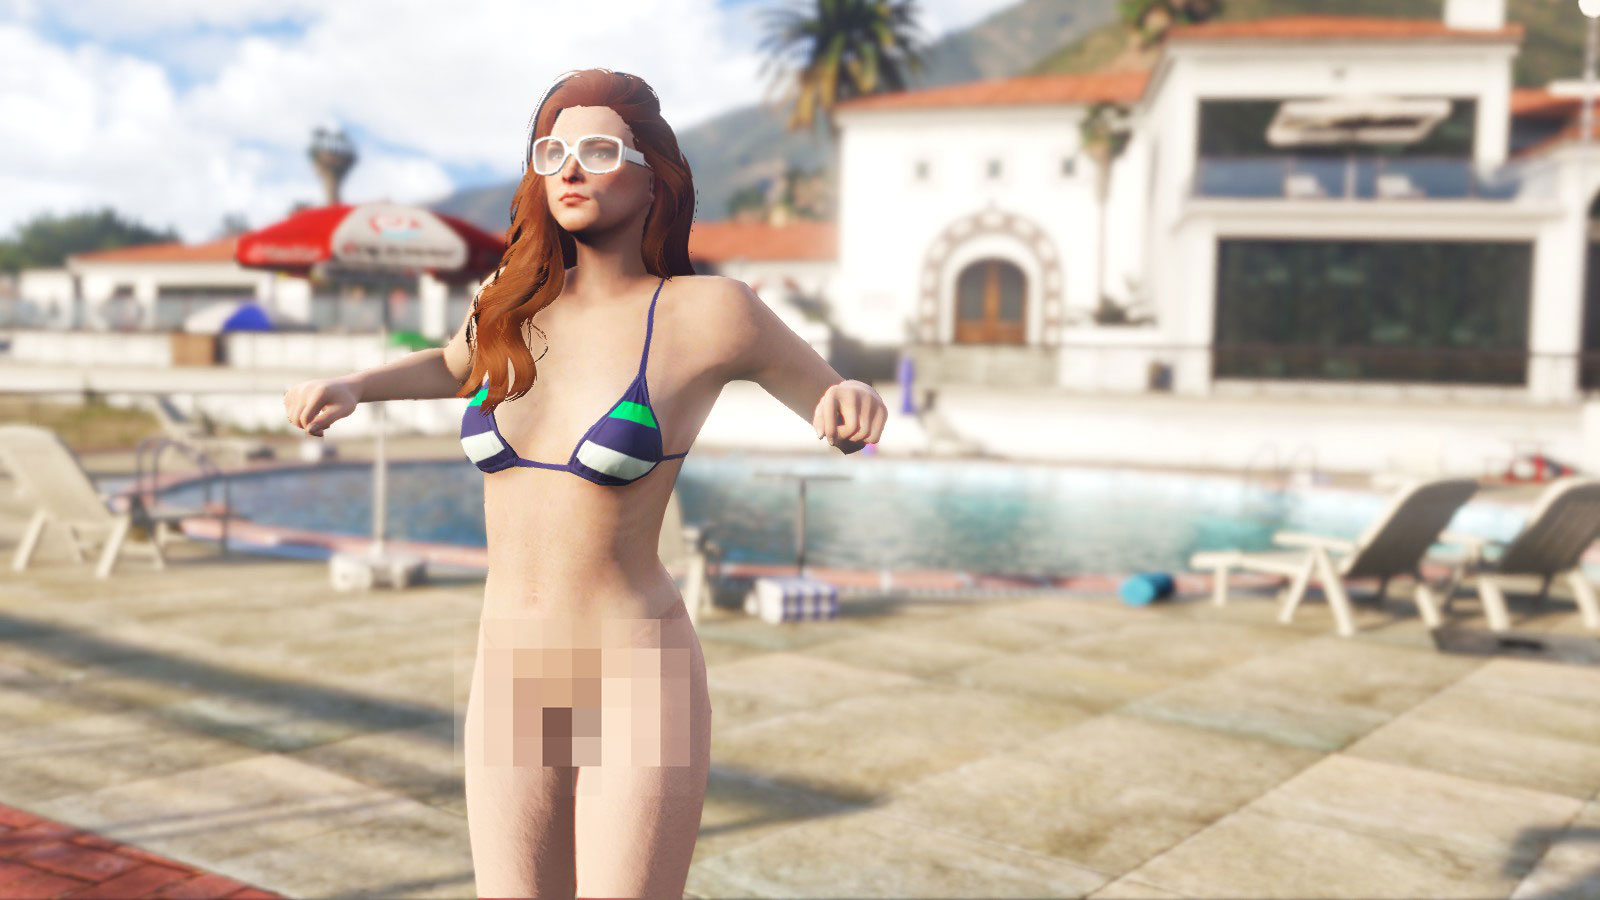 Gta 5 nude mods